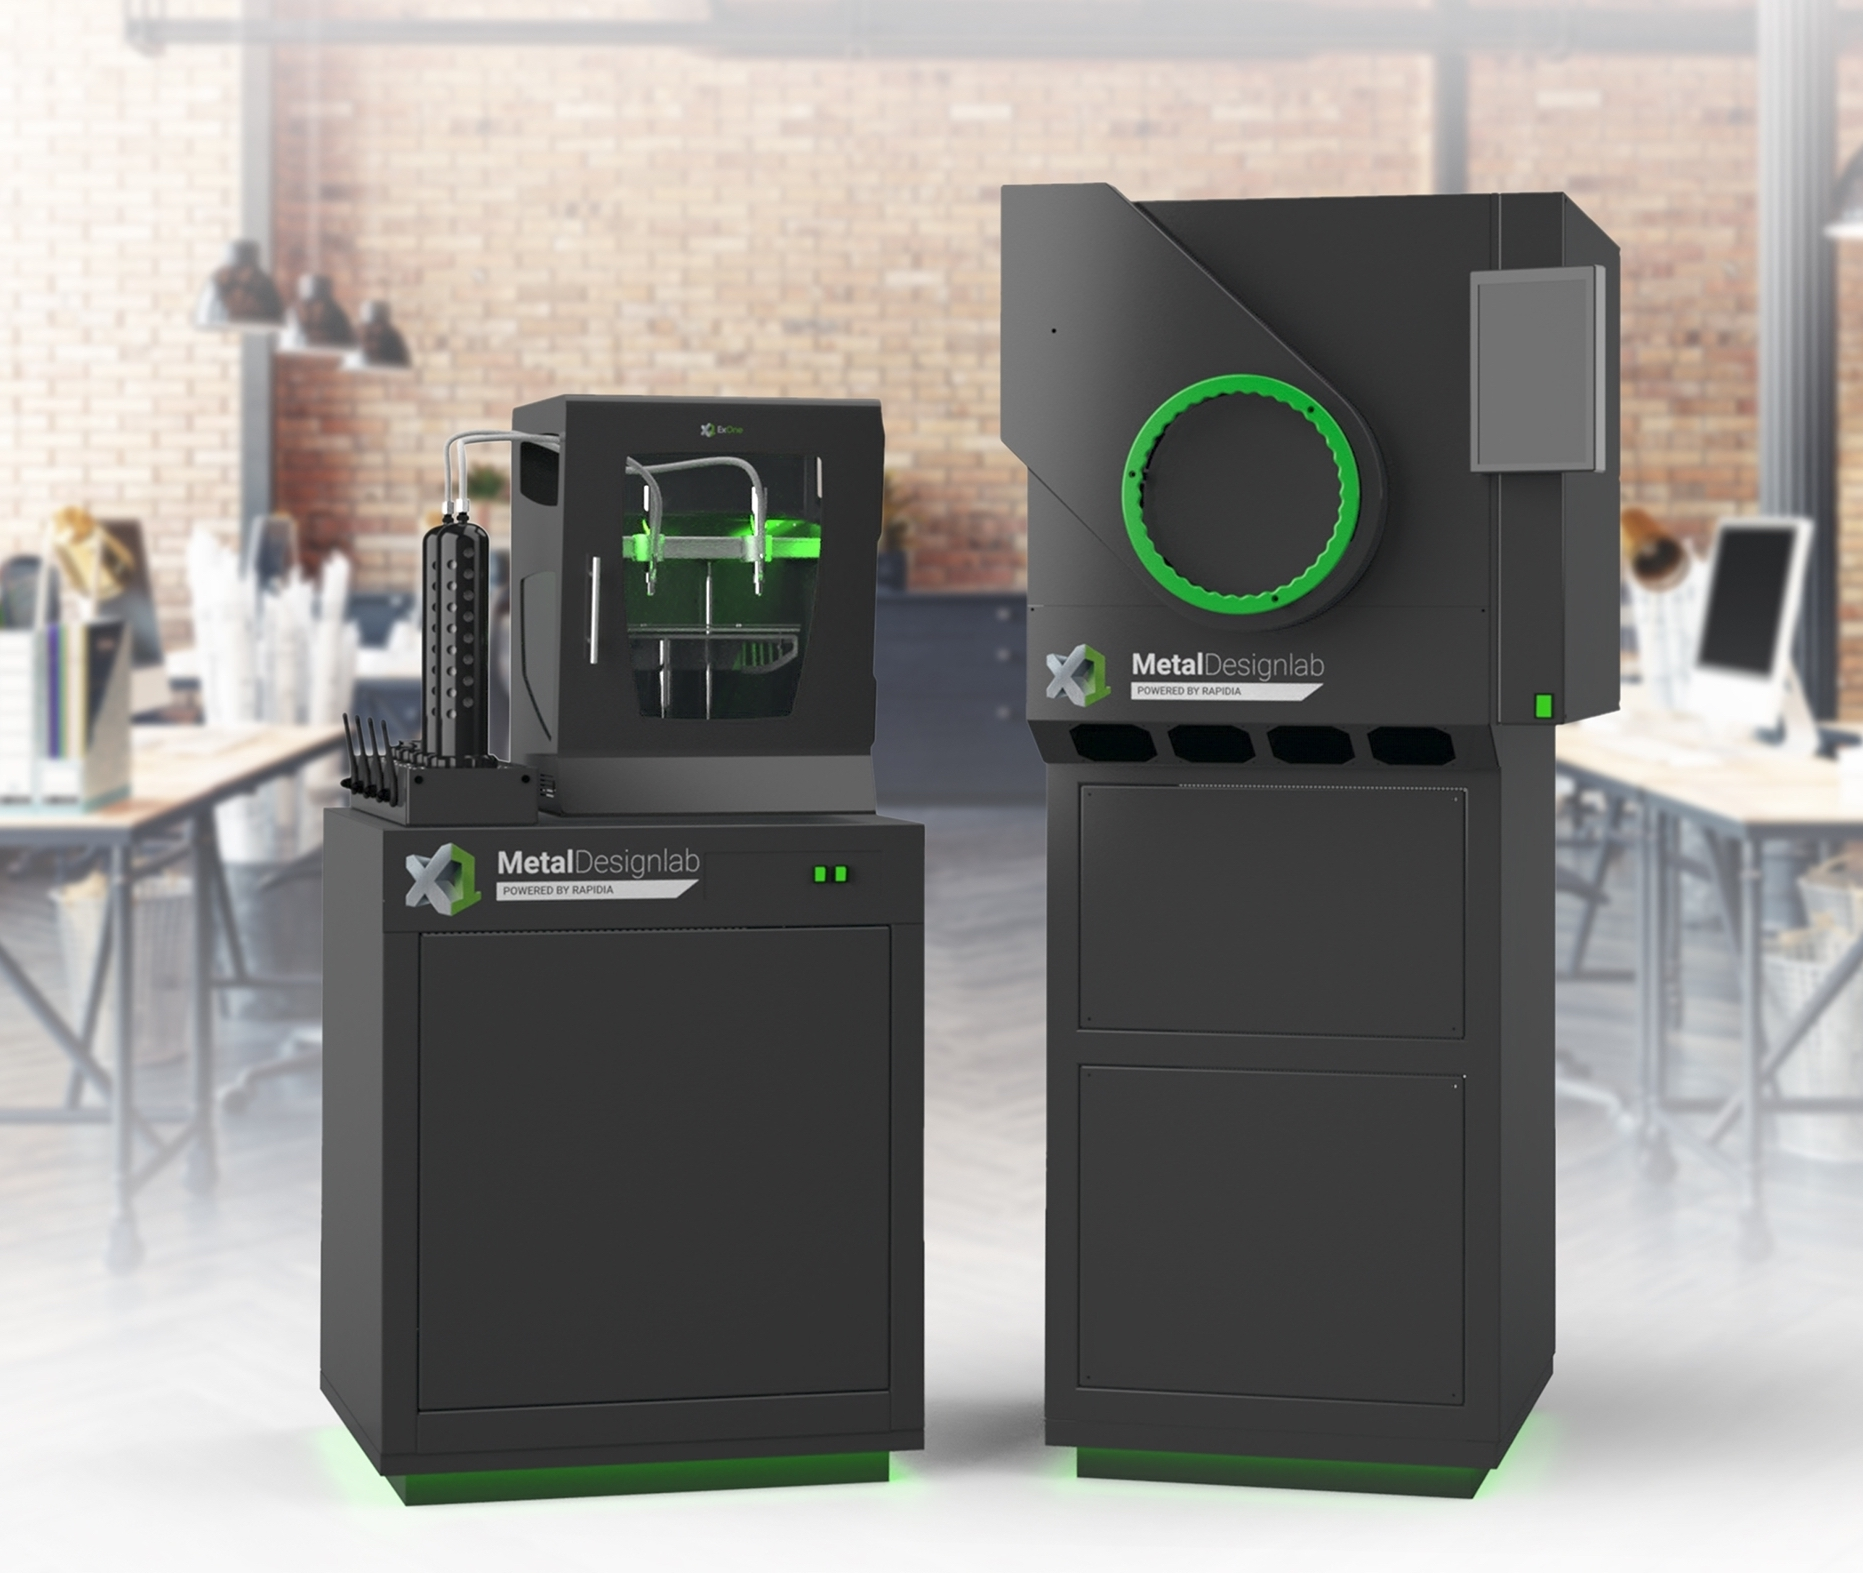 A concept image of ExOne's new Designlab 3D printer and X1F furnace.